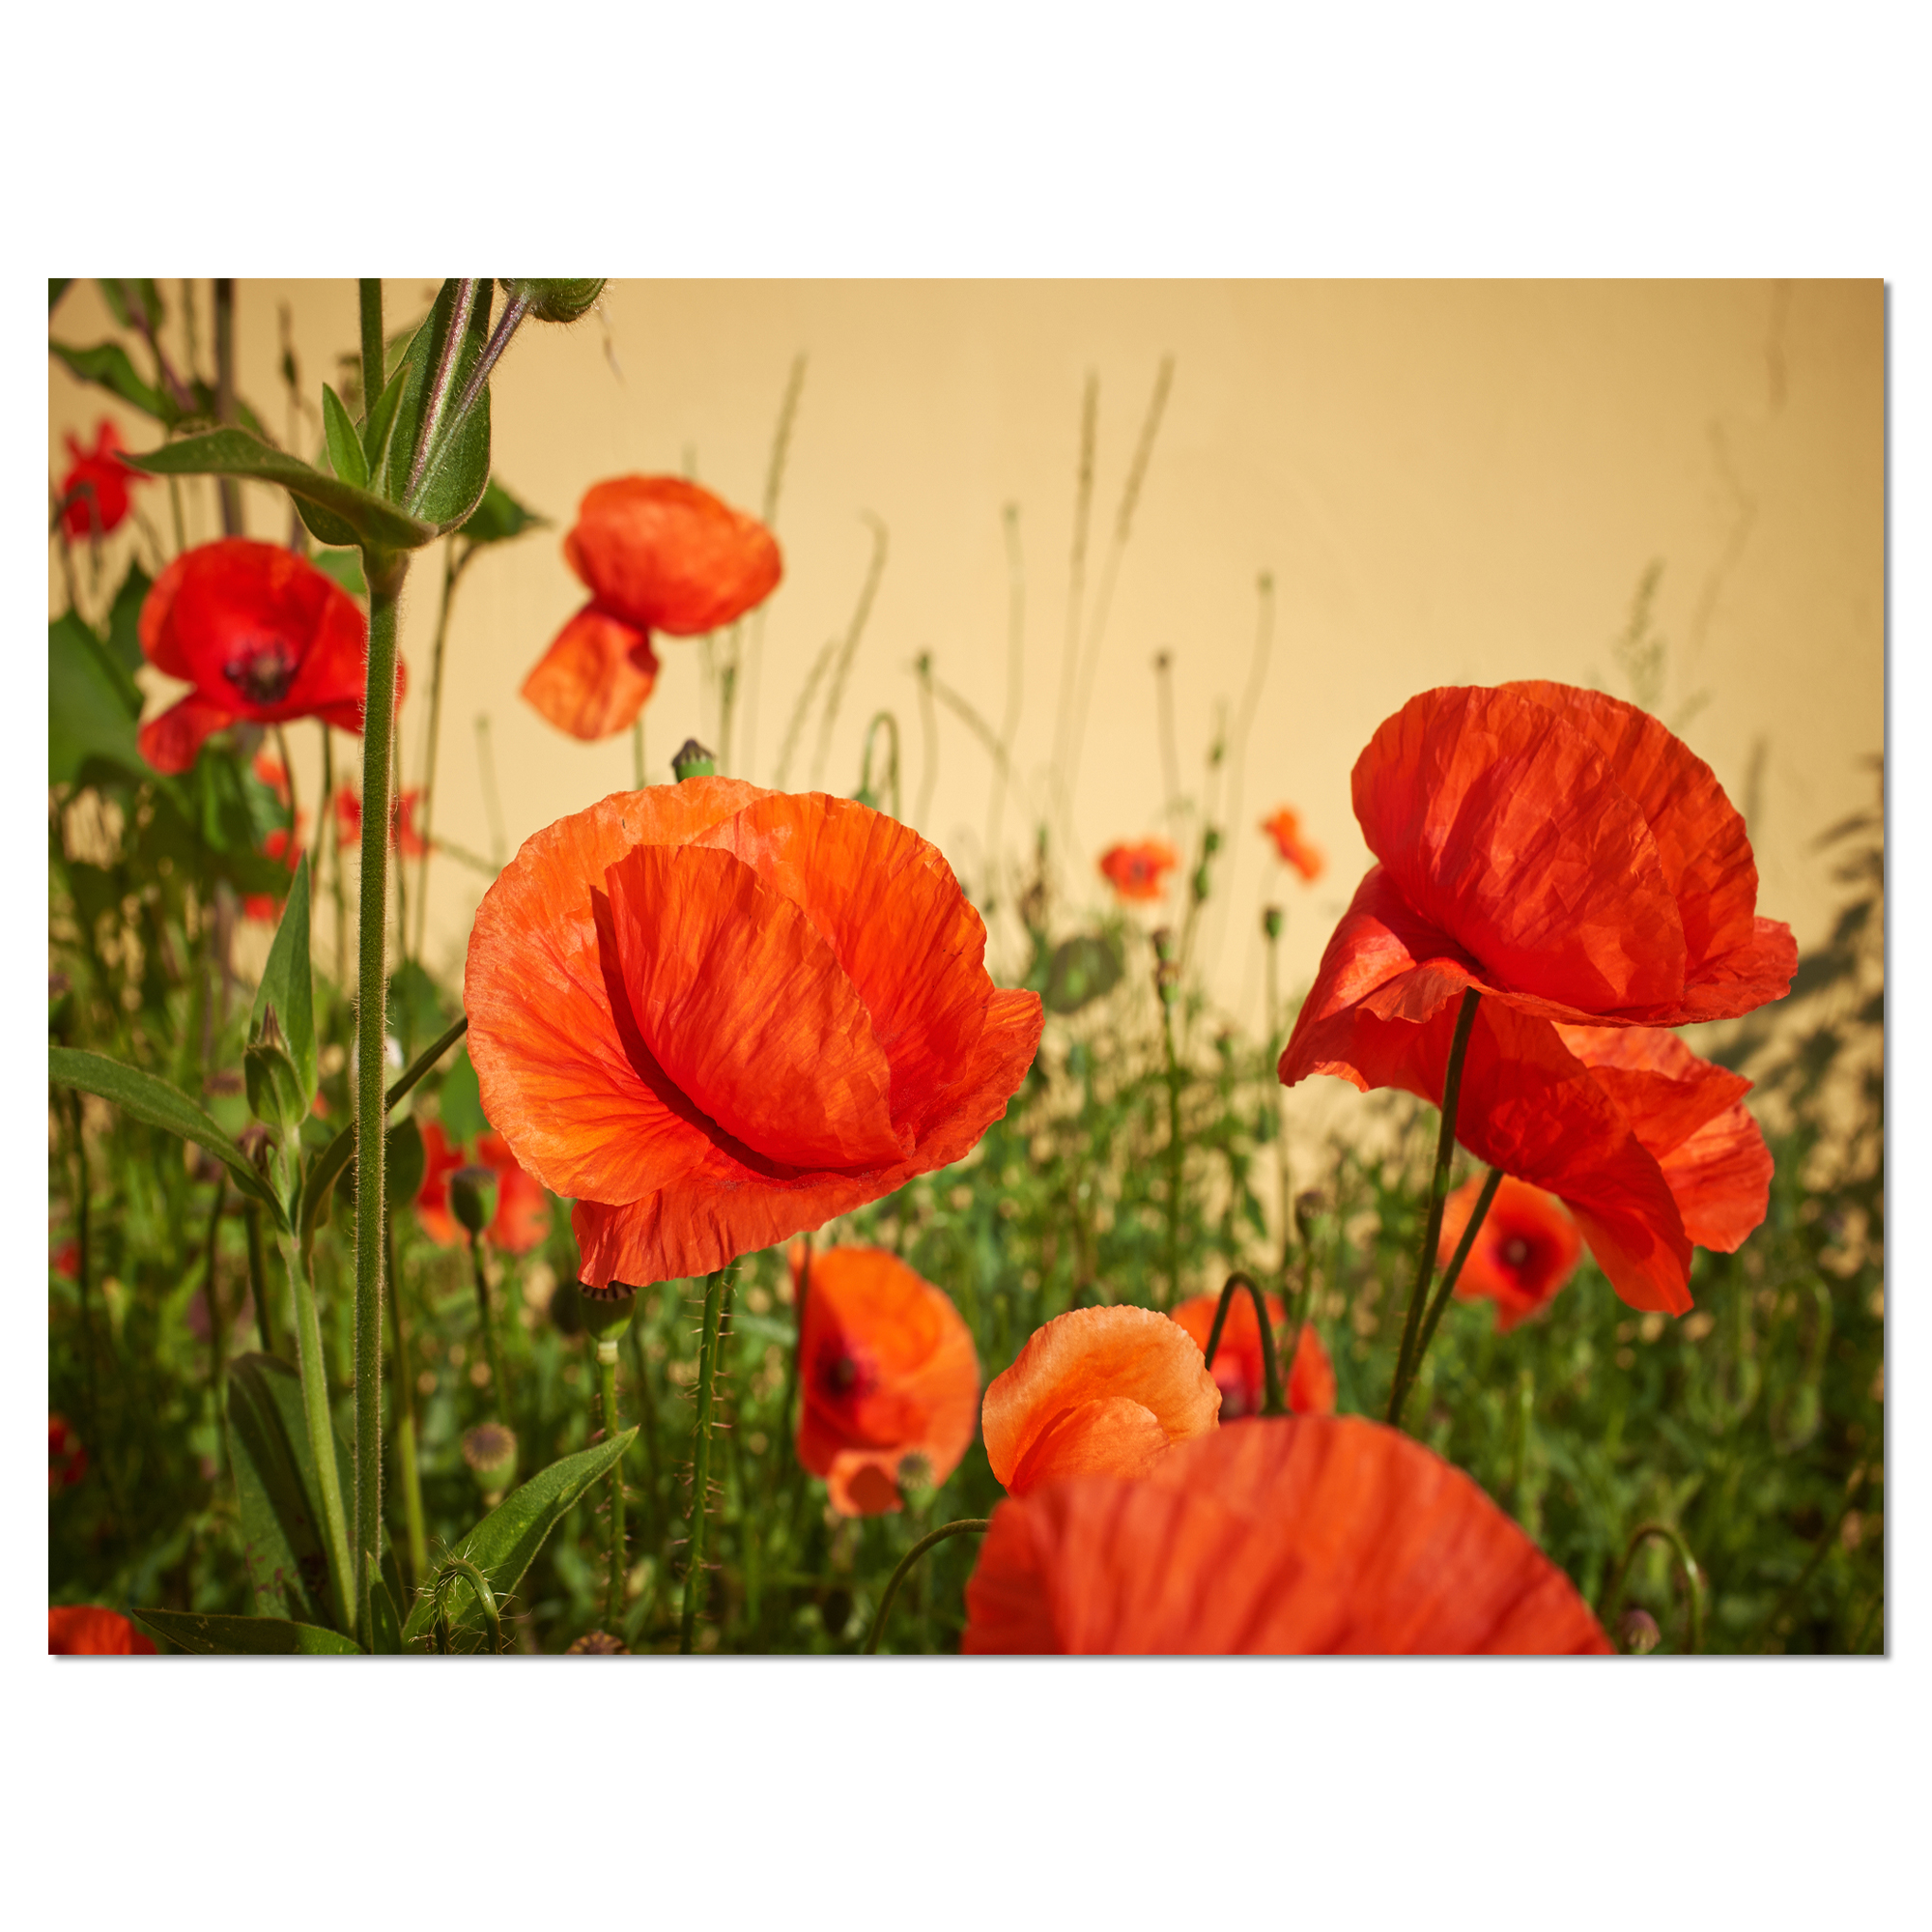 Colorful Red Poppy Flower Field Flower Artwork On Canvas Walmart